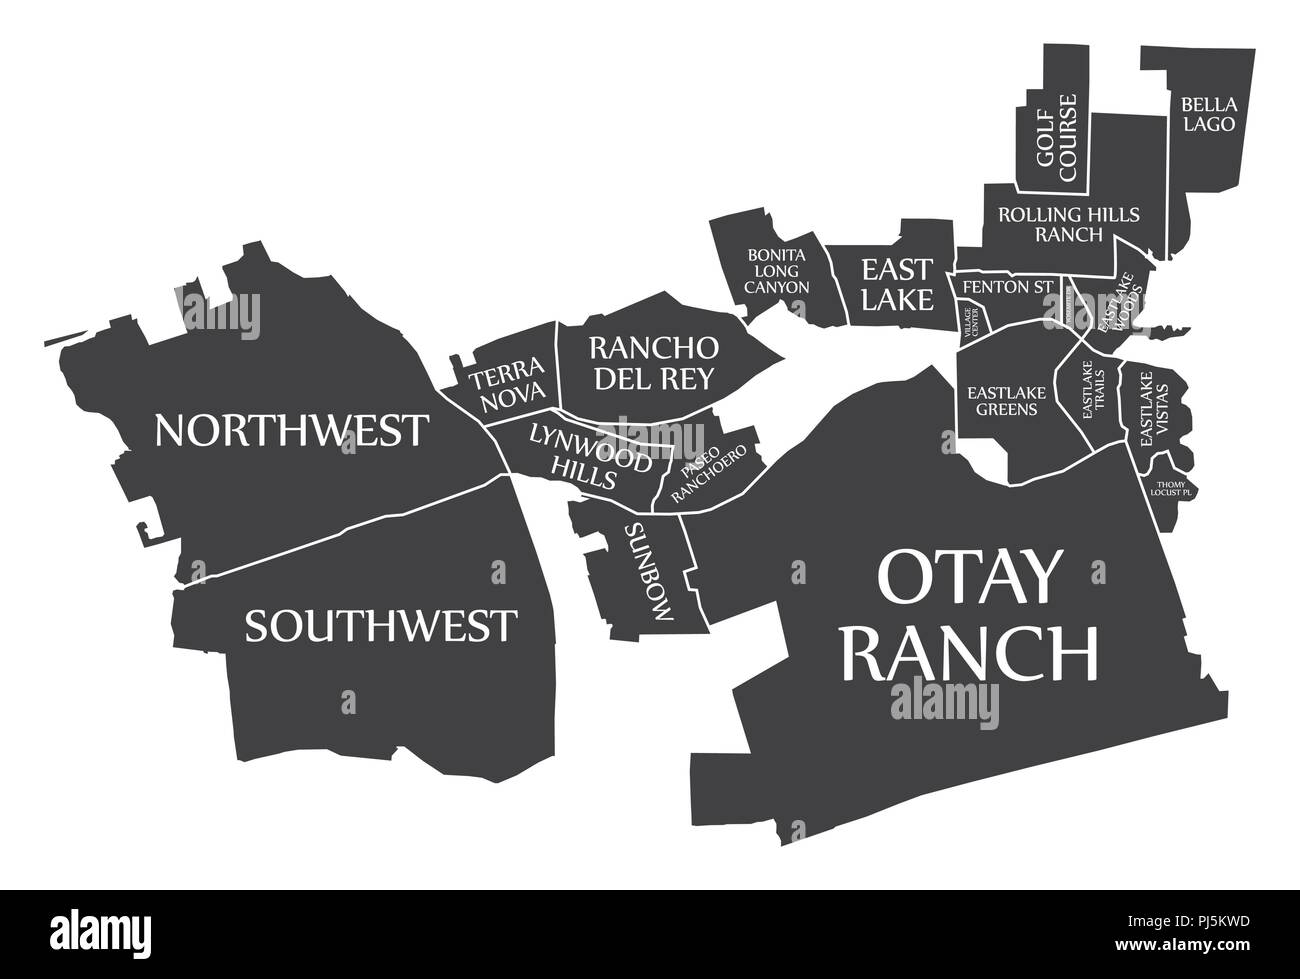 California City Map on